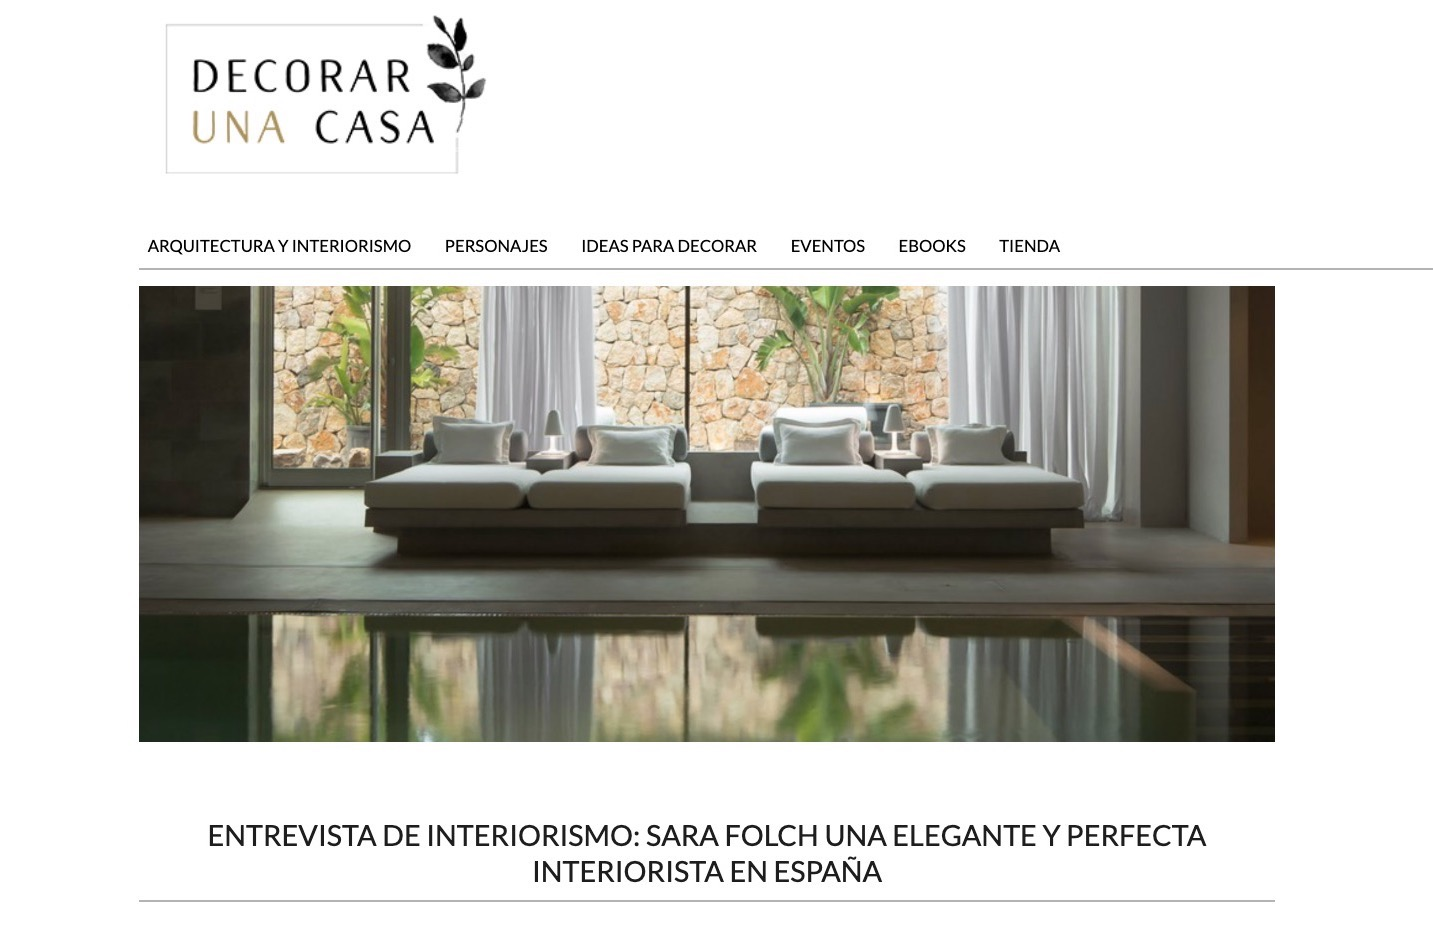 Decorar una casa interviews Sara Folch Interior Design